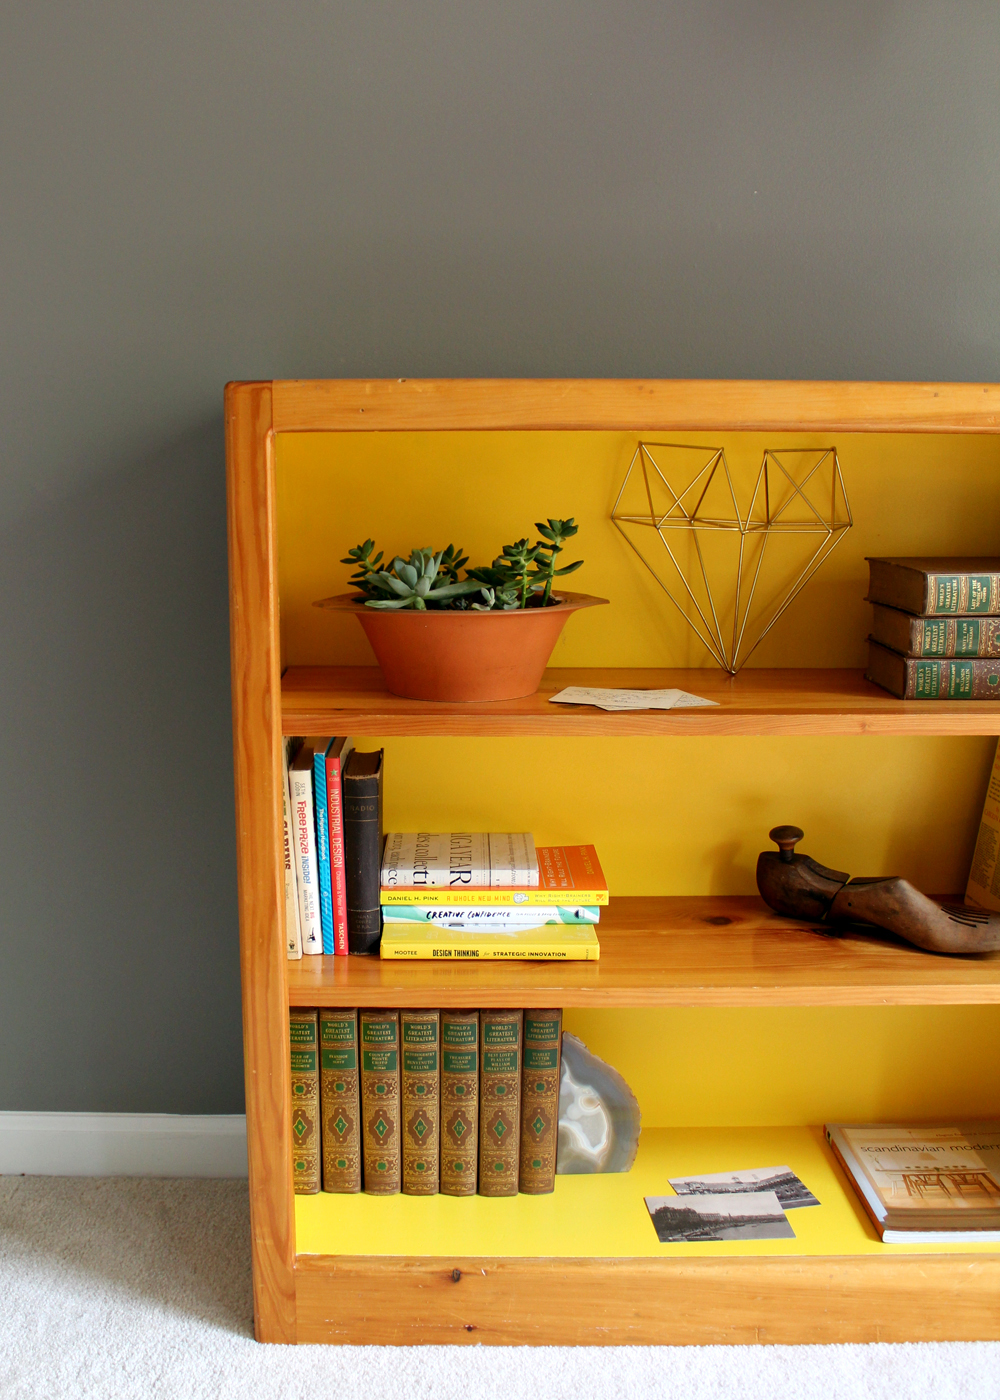 thrift store bookcase painted Sherwin Williams Cheerful. (walls painted SW Dovetail Gray)